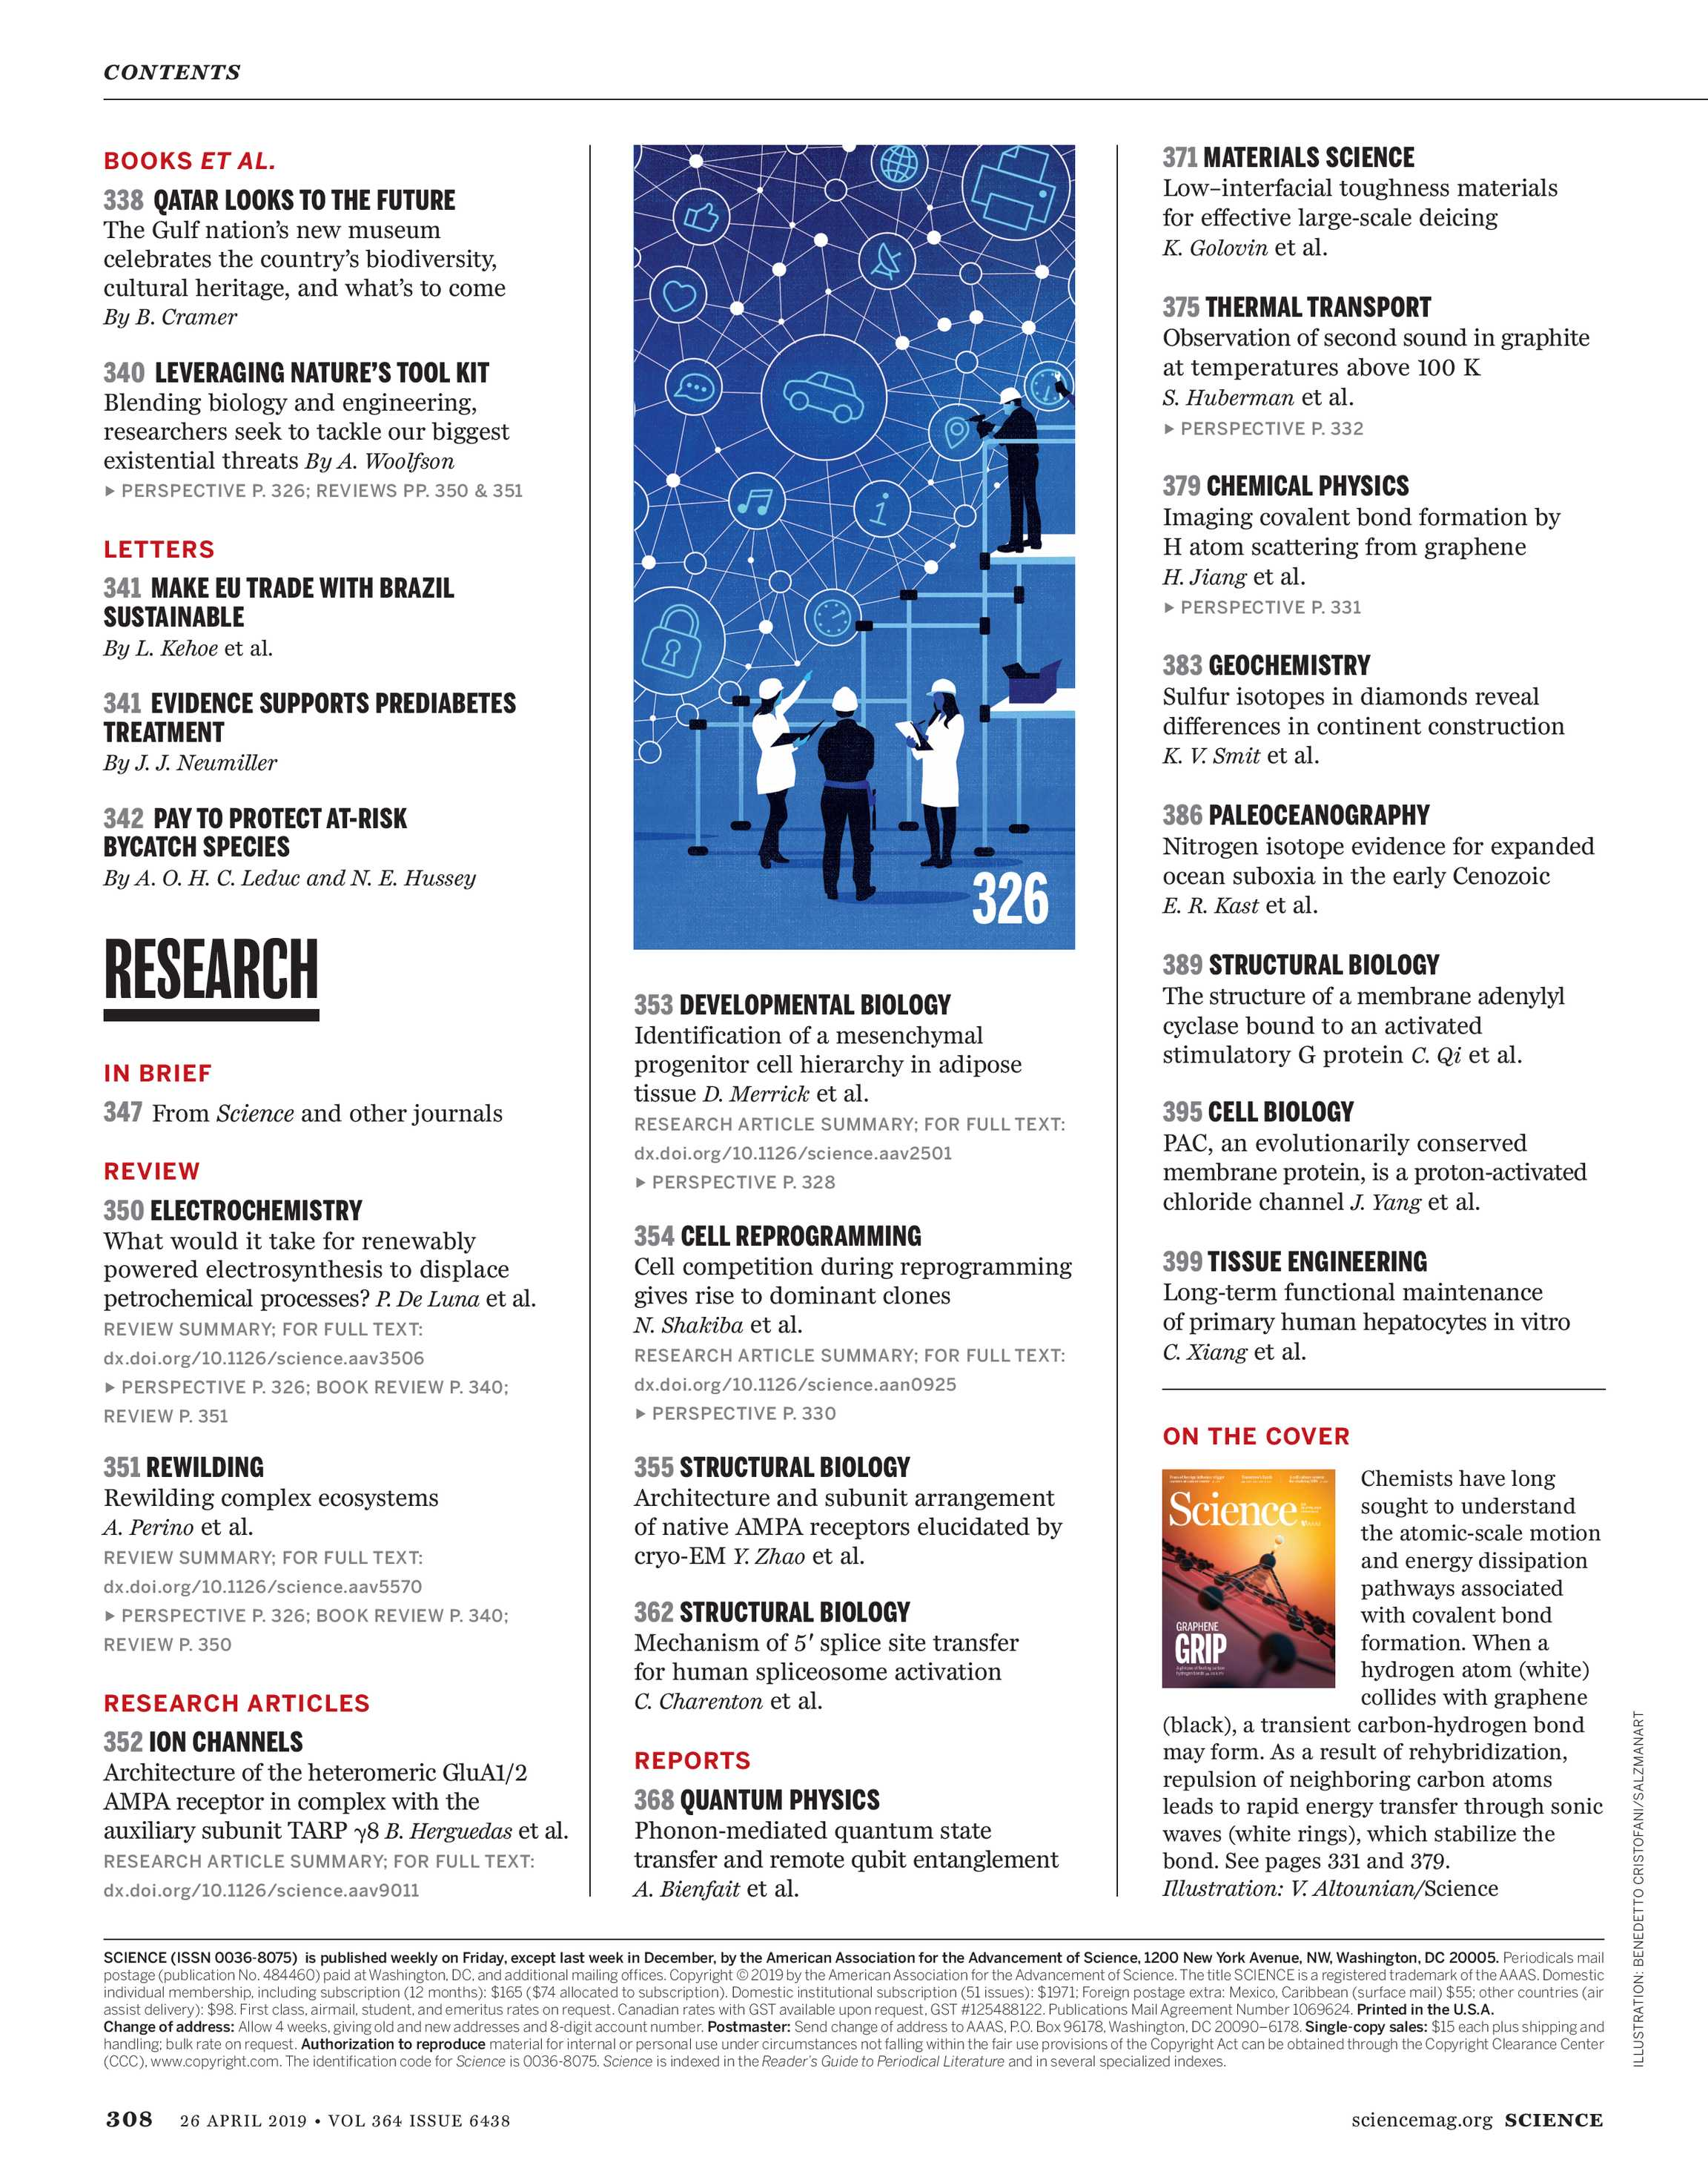 Science Magazine - April 26, 2019 - page Cover